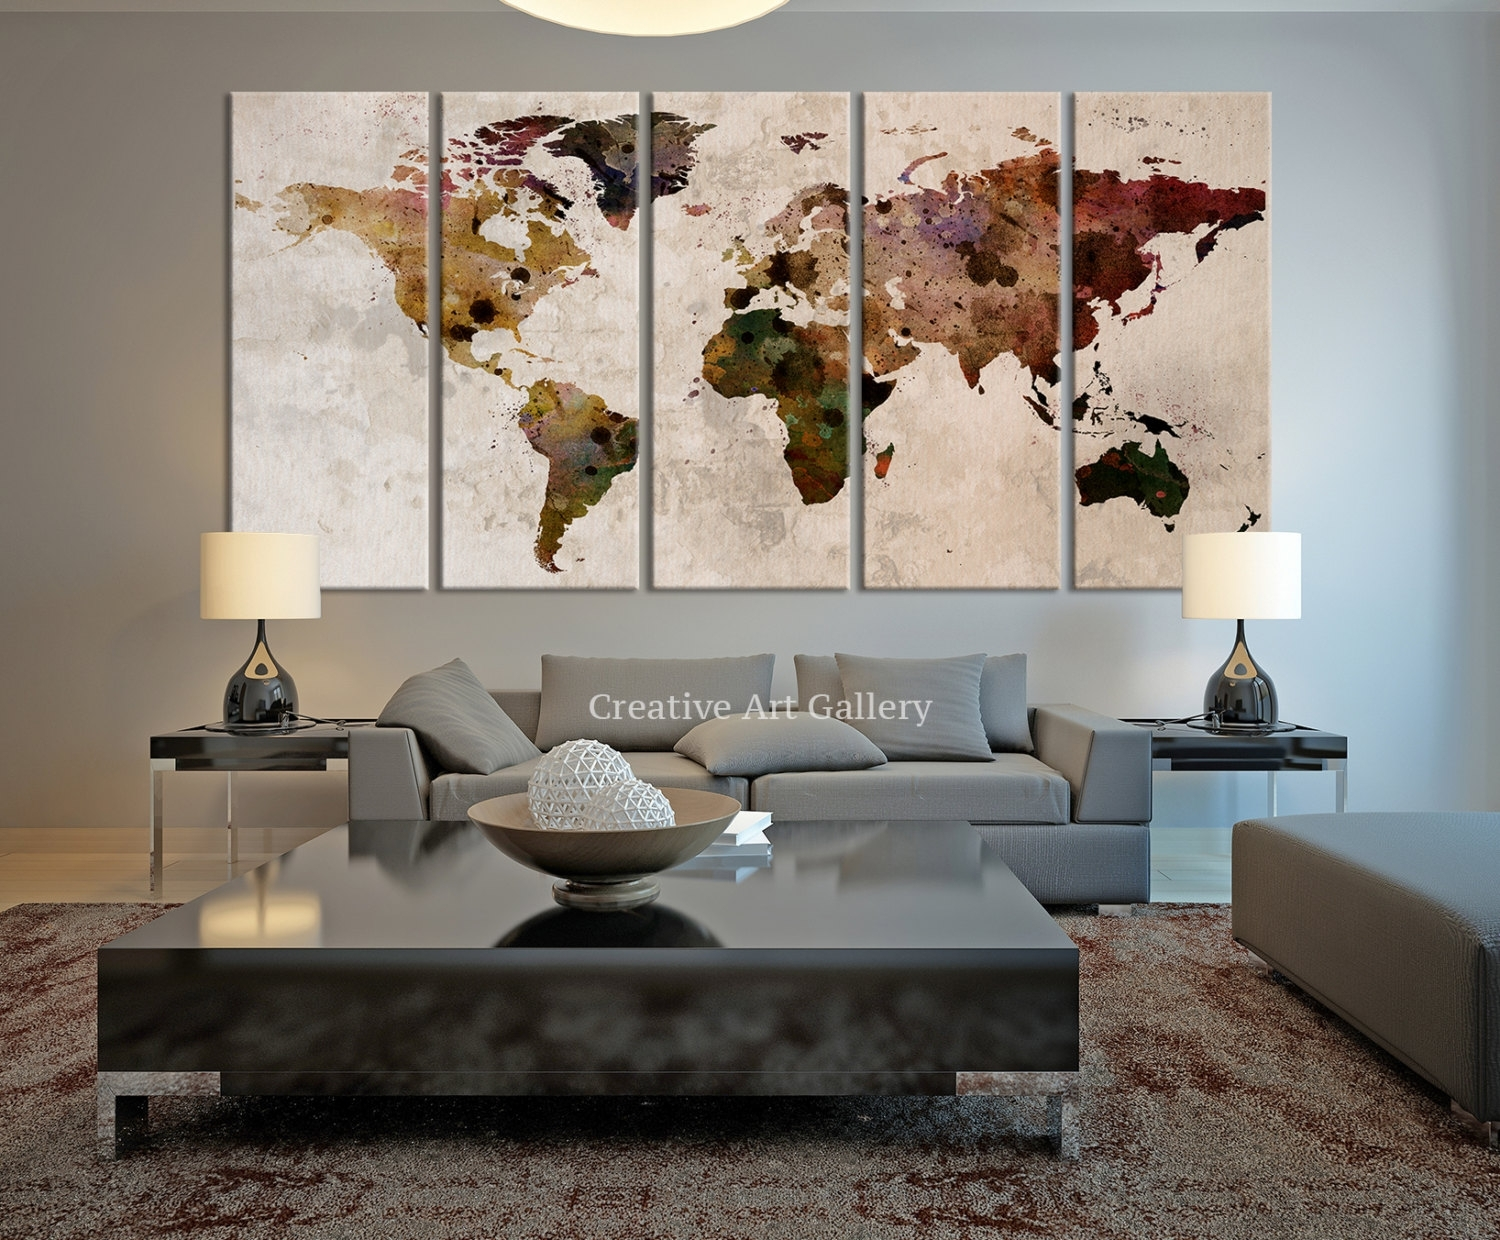 20+ Rustic Wall Decor Ideas To Help You Add Rustic Beauty To Your With Most Recent Rustic Fabric Wall Art (View 3 of 15)